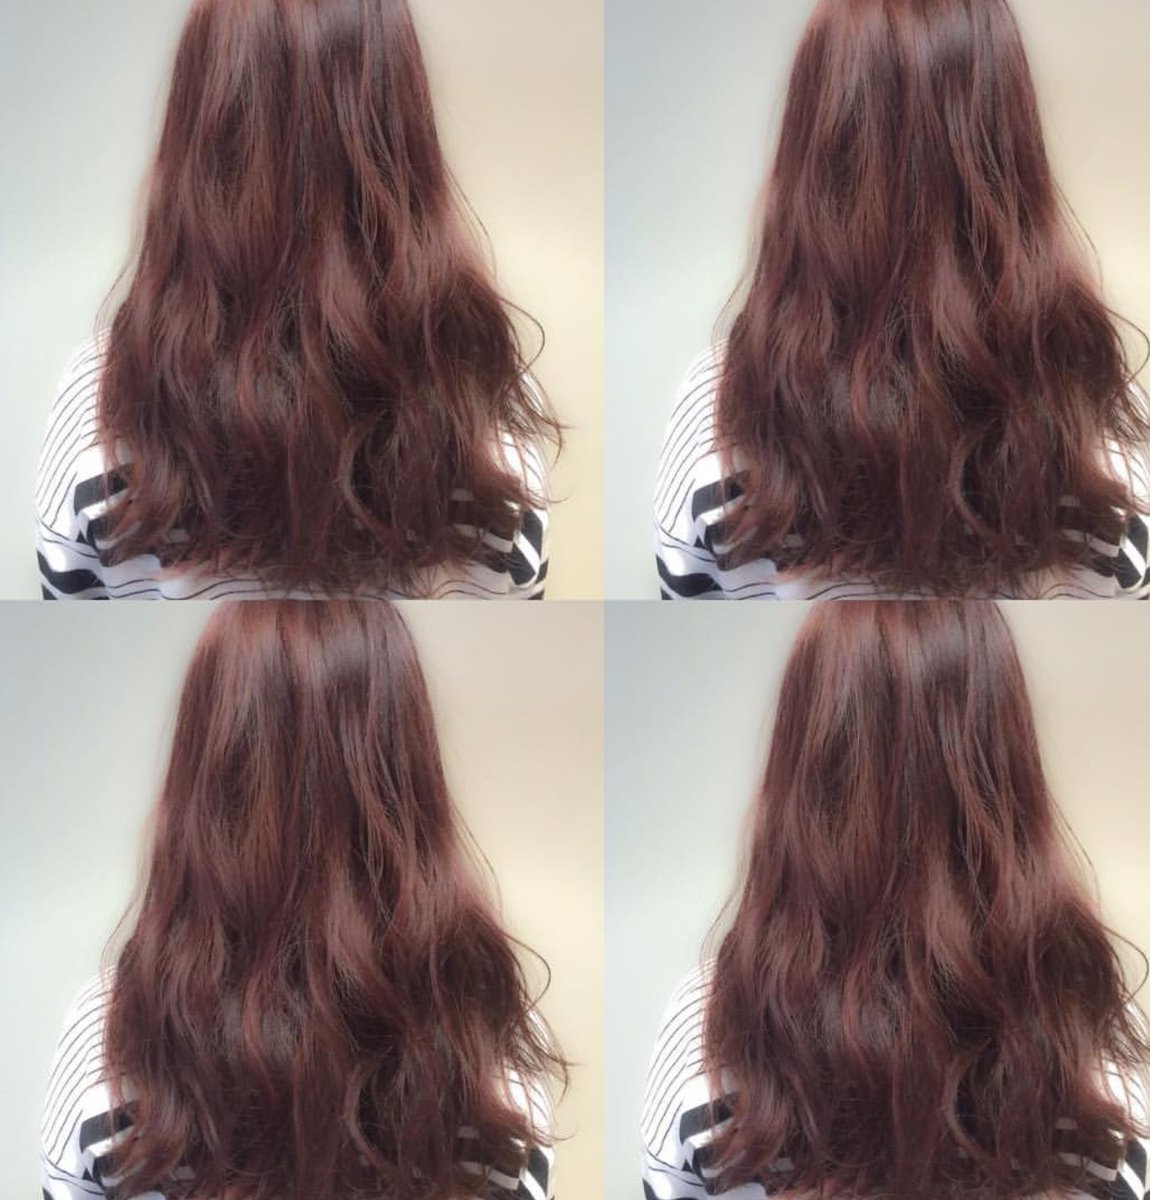 Healhair_korea